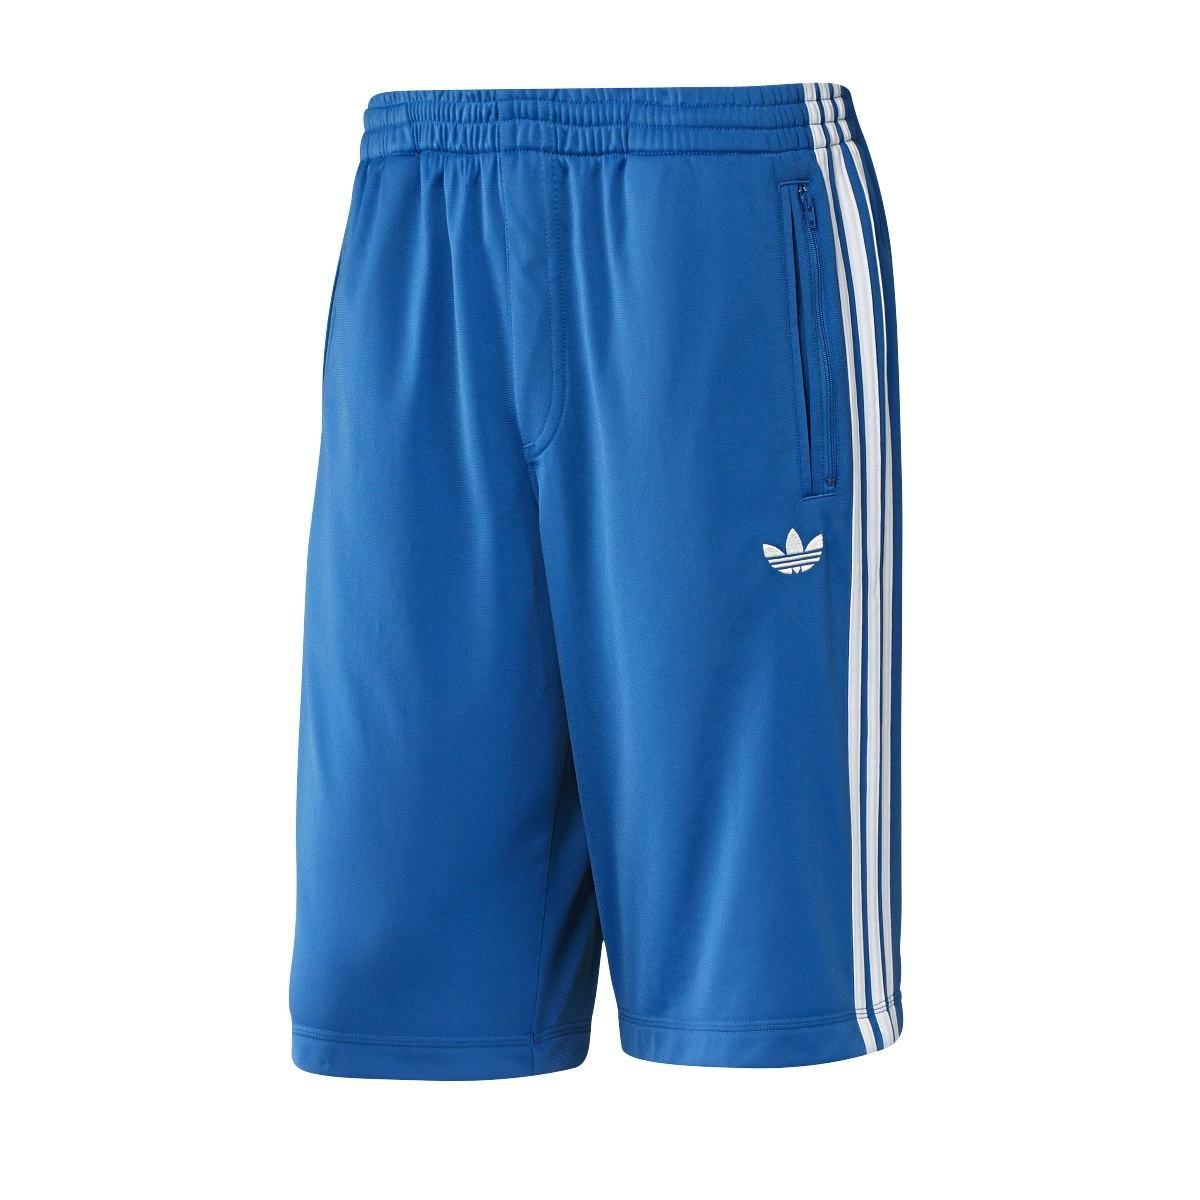 adidas originals firebird shorts hose sporthose. Black Bedroom Furniture Sets. Home Design Ideas